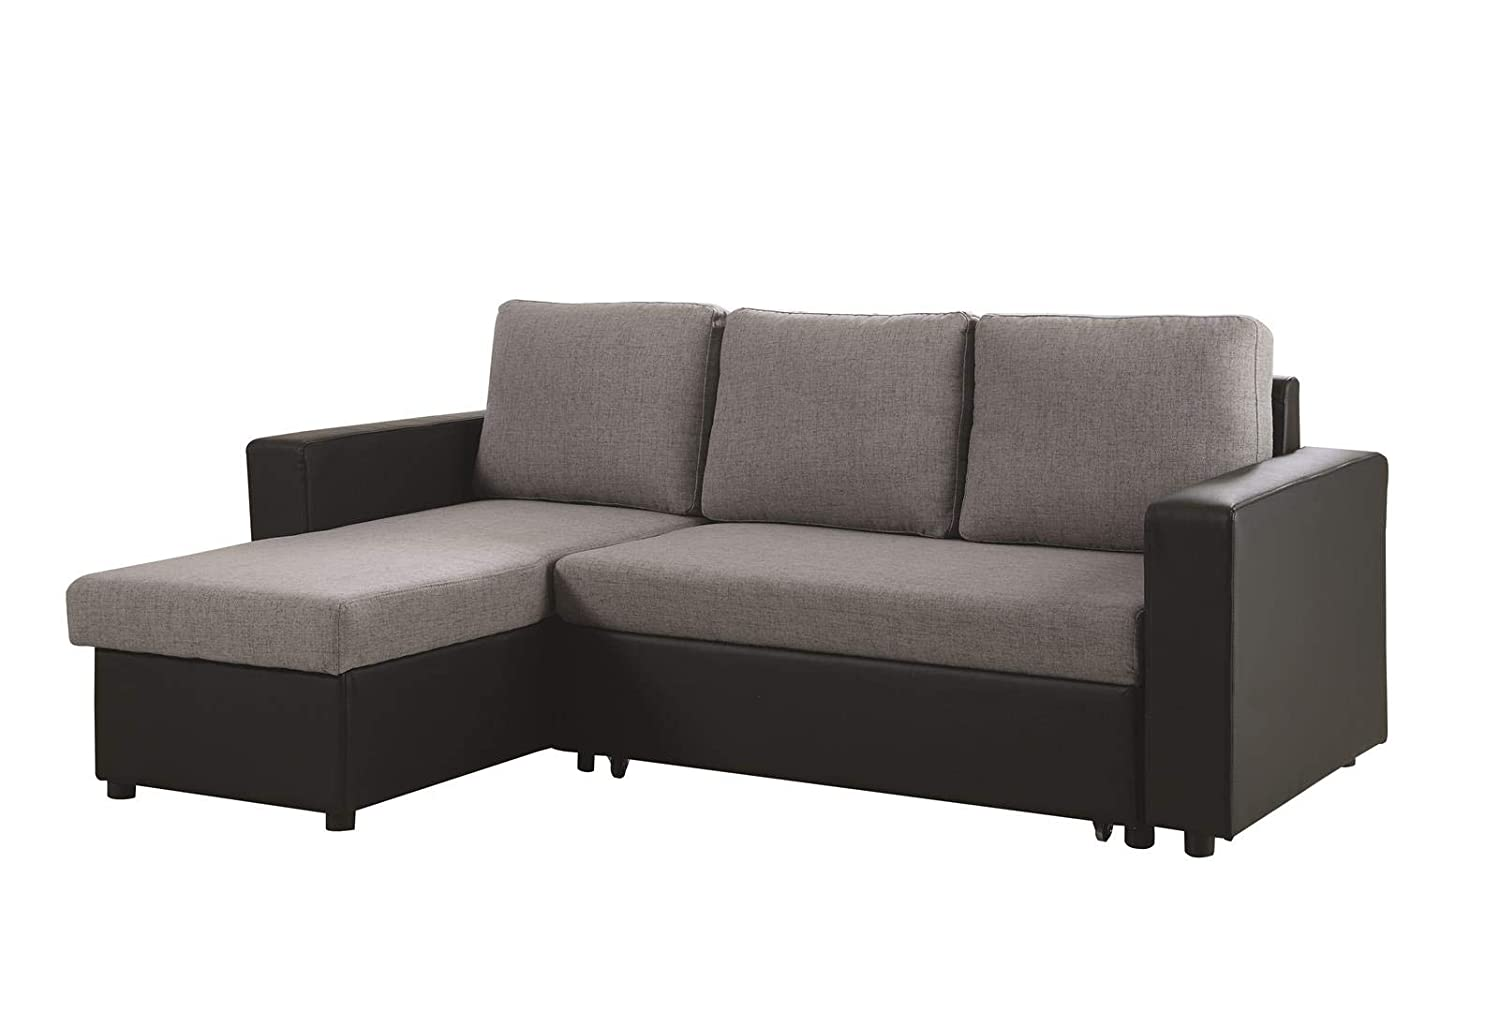 Coaster Home Furnishings 503929 Everly Reversible Sleeper Sectional Sofa Grey and Black